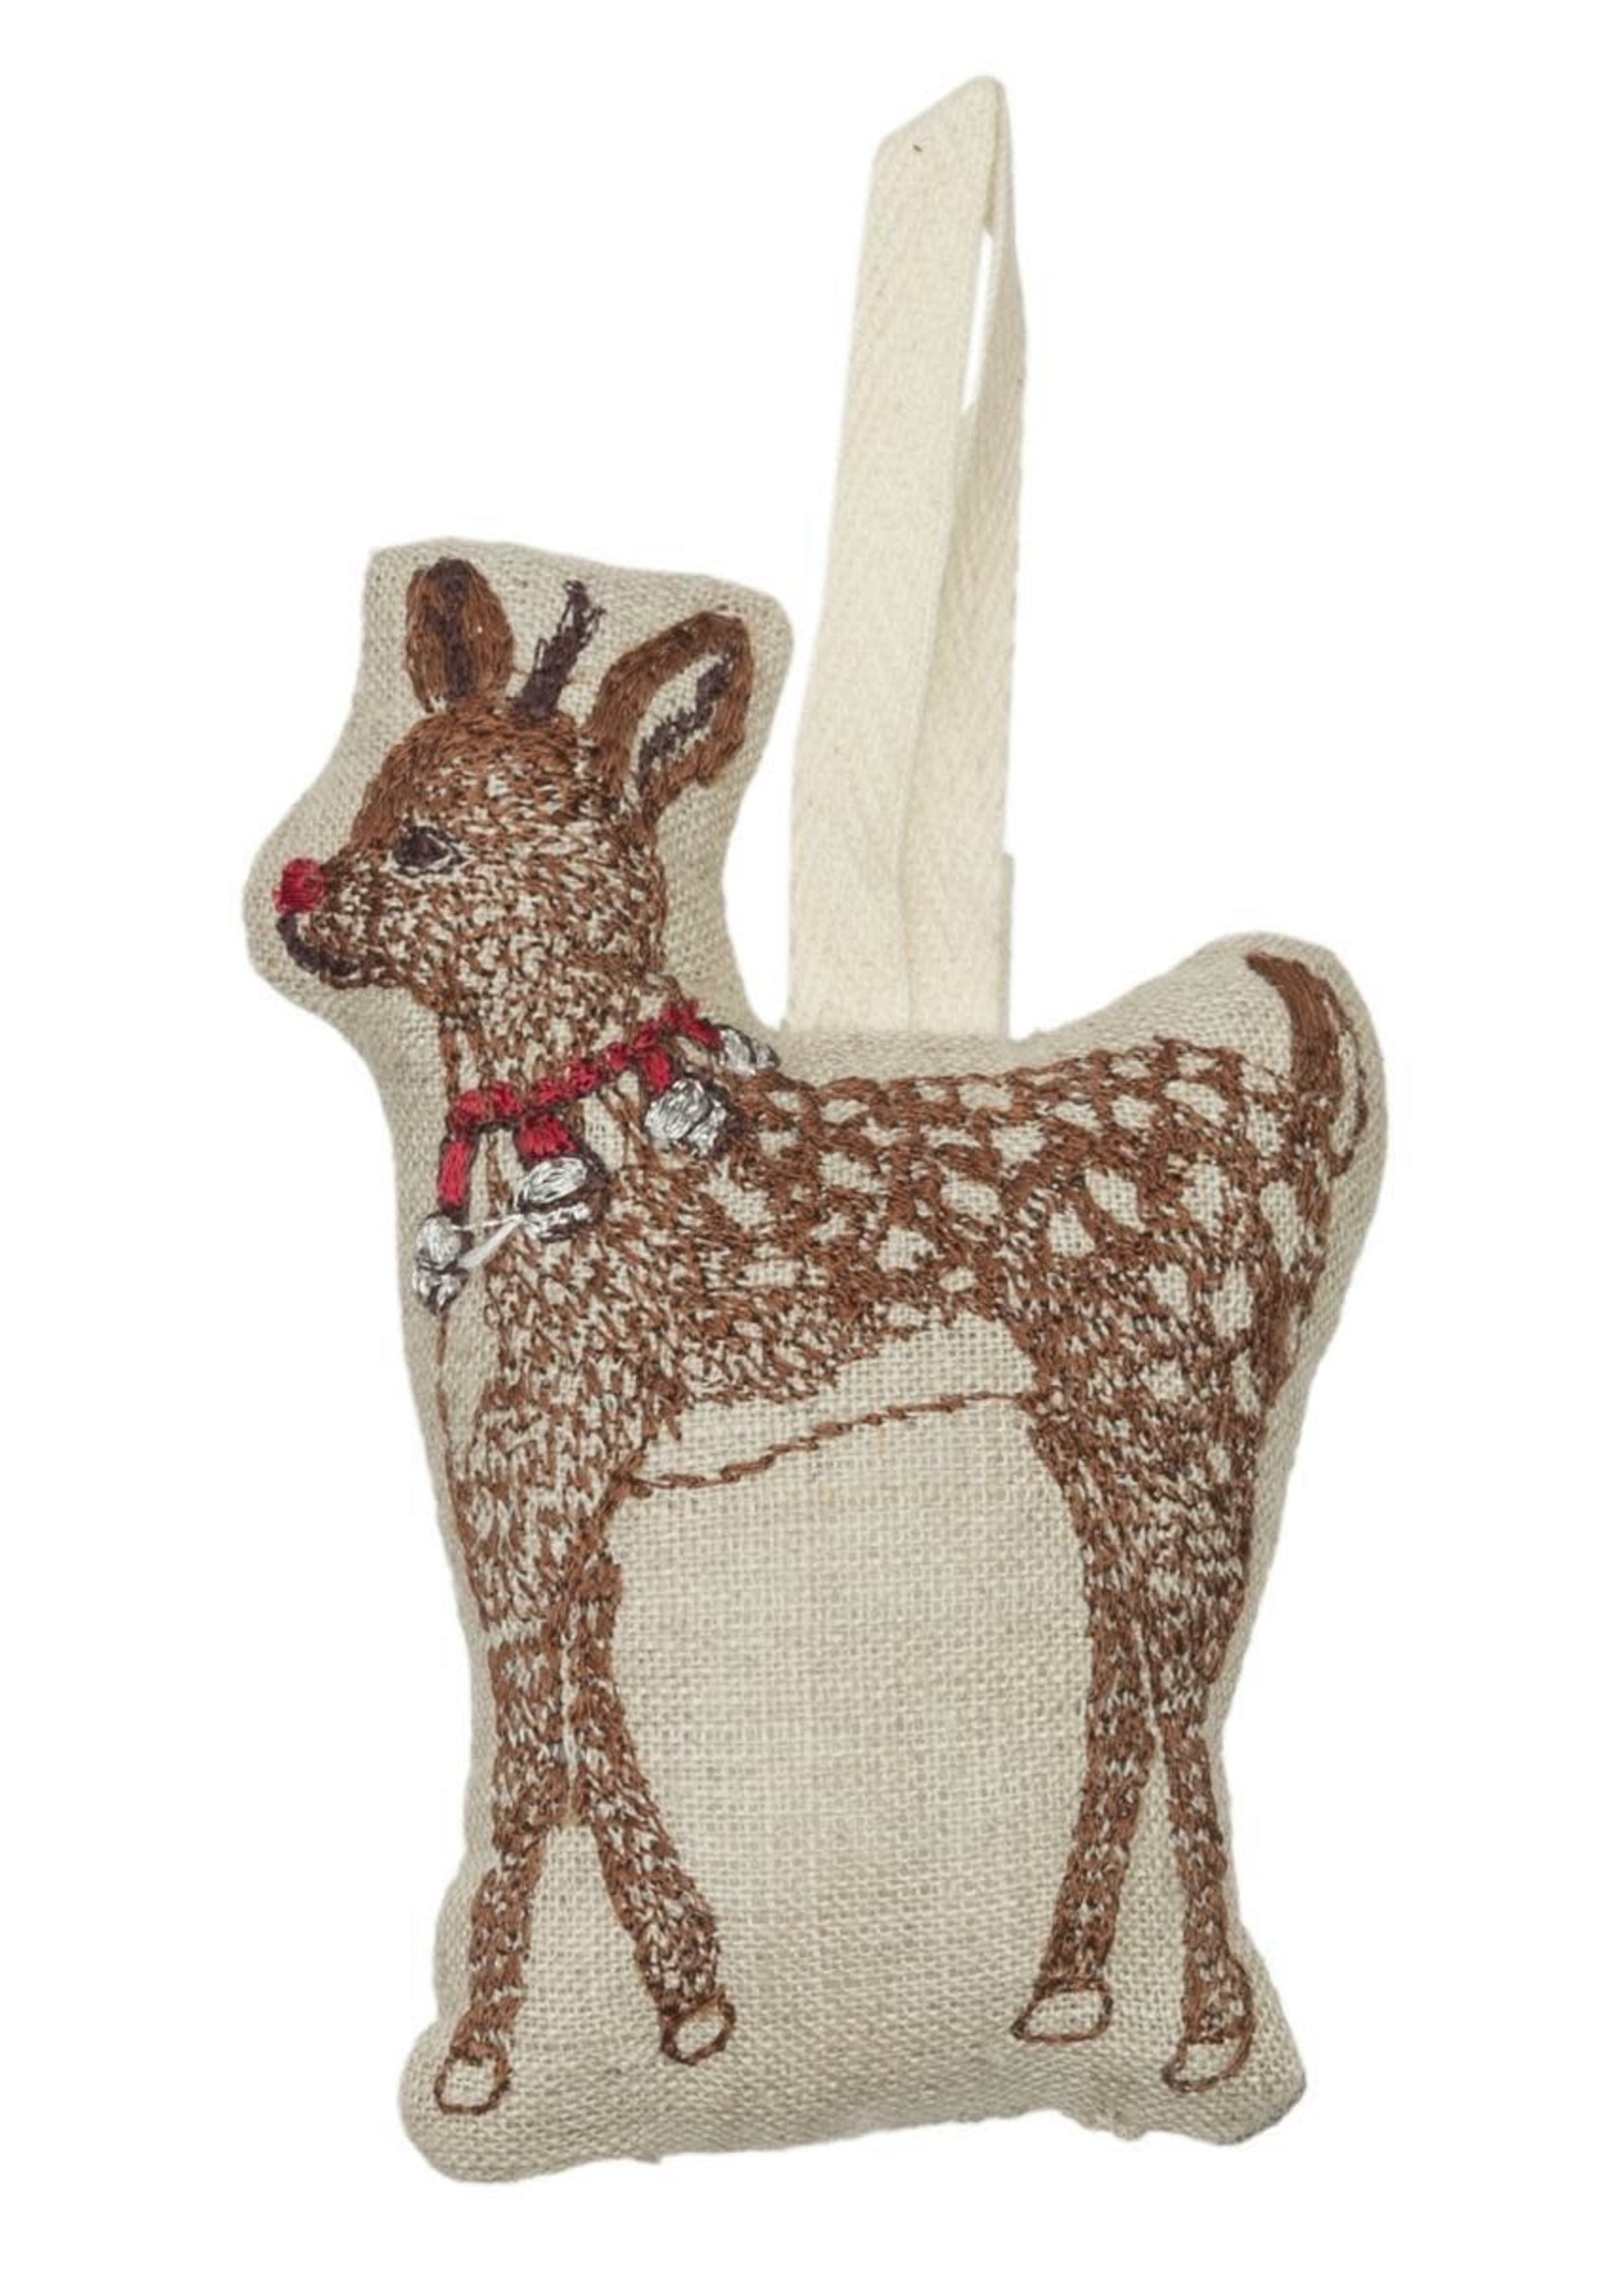 Coral and Tusk Ornament - Rudolph